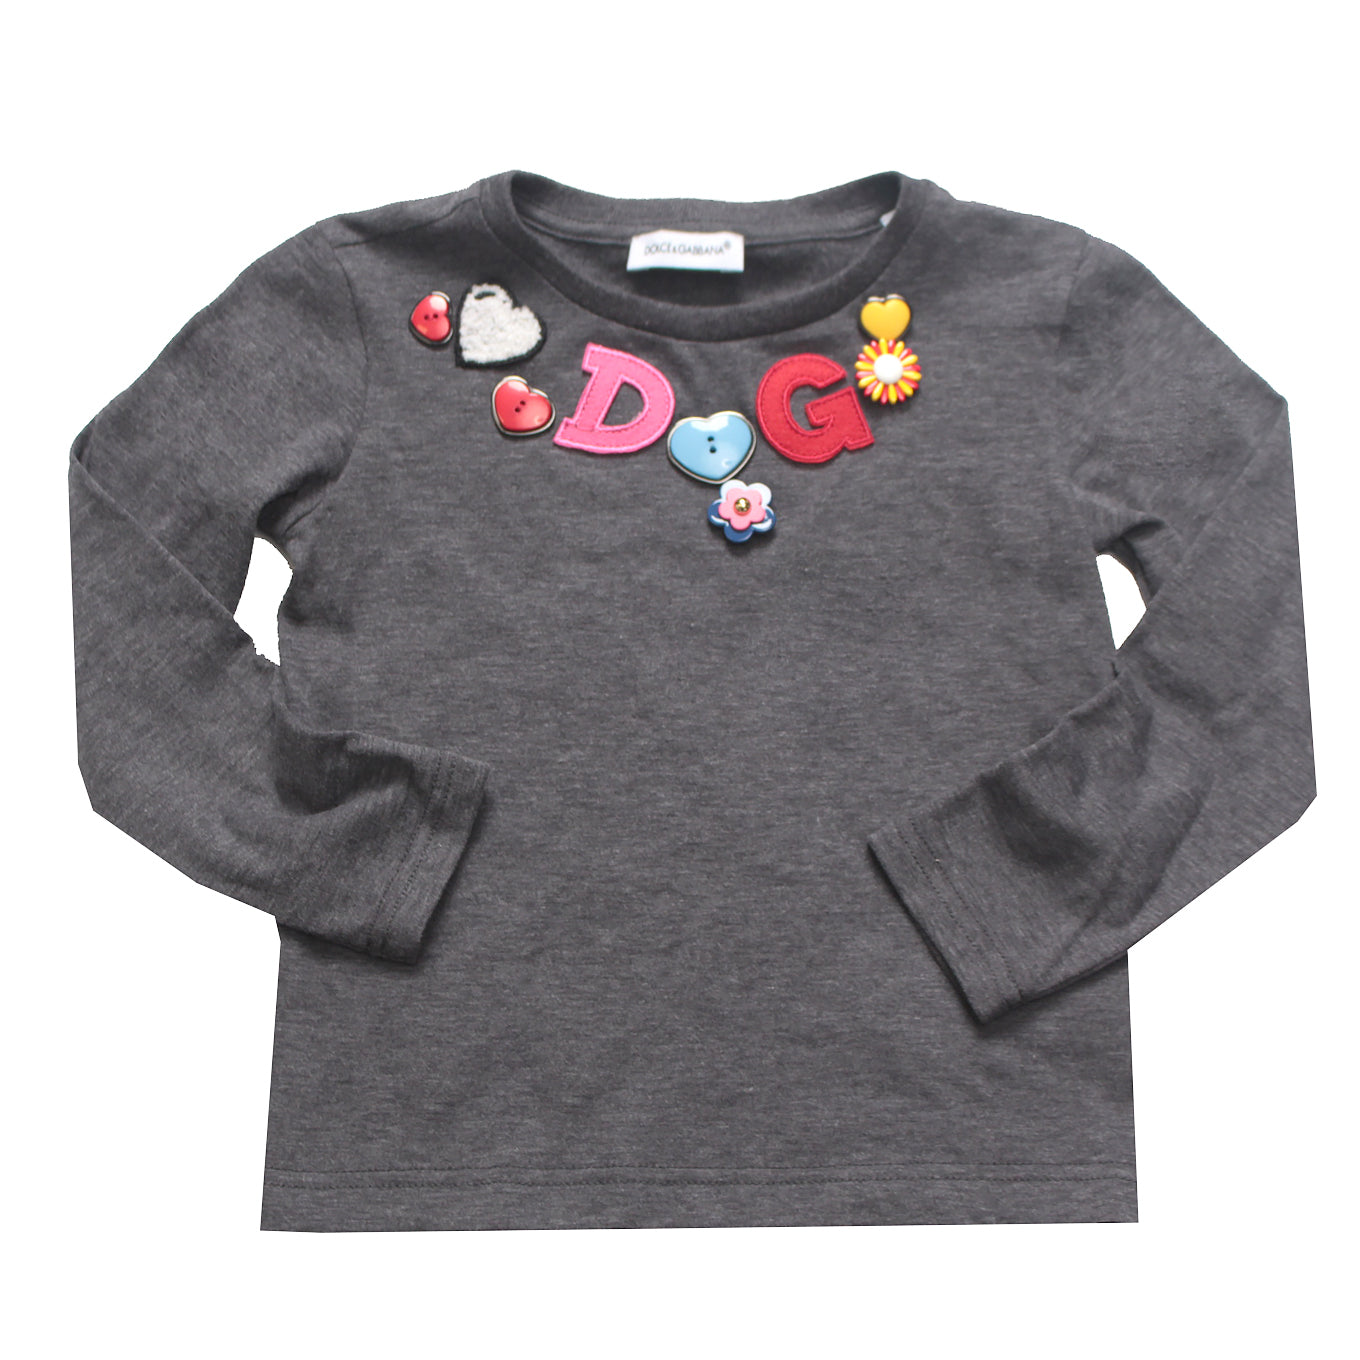 Kids-Girls Back to School Long Sleeve T-Shirt-Grey